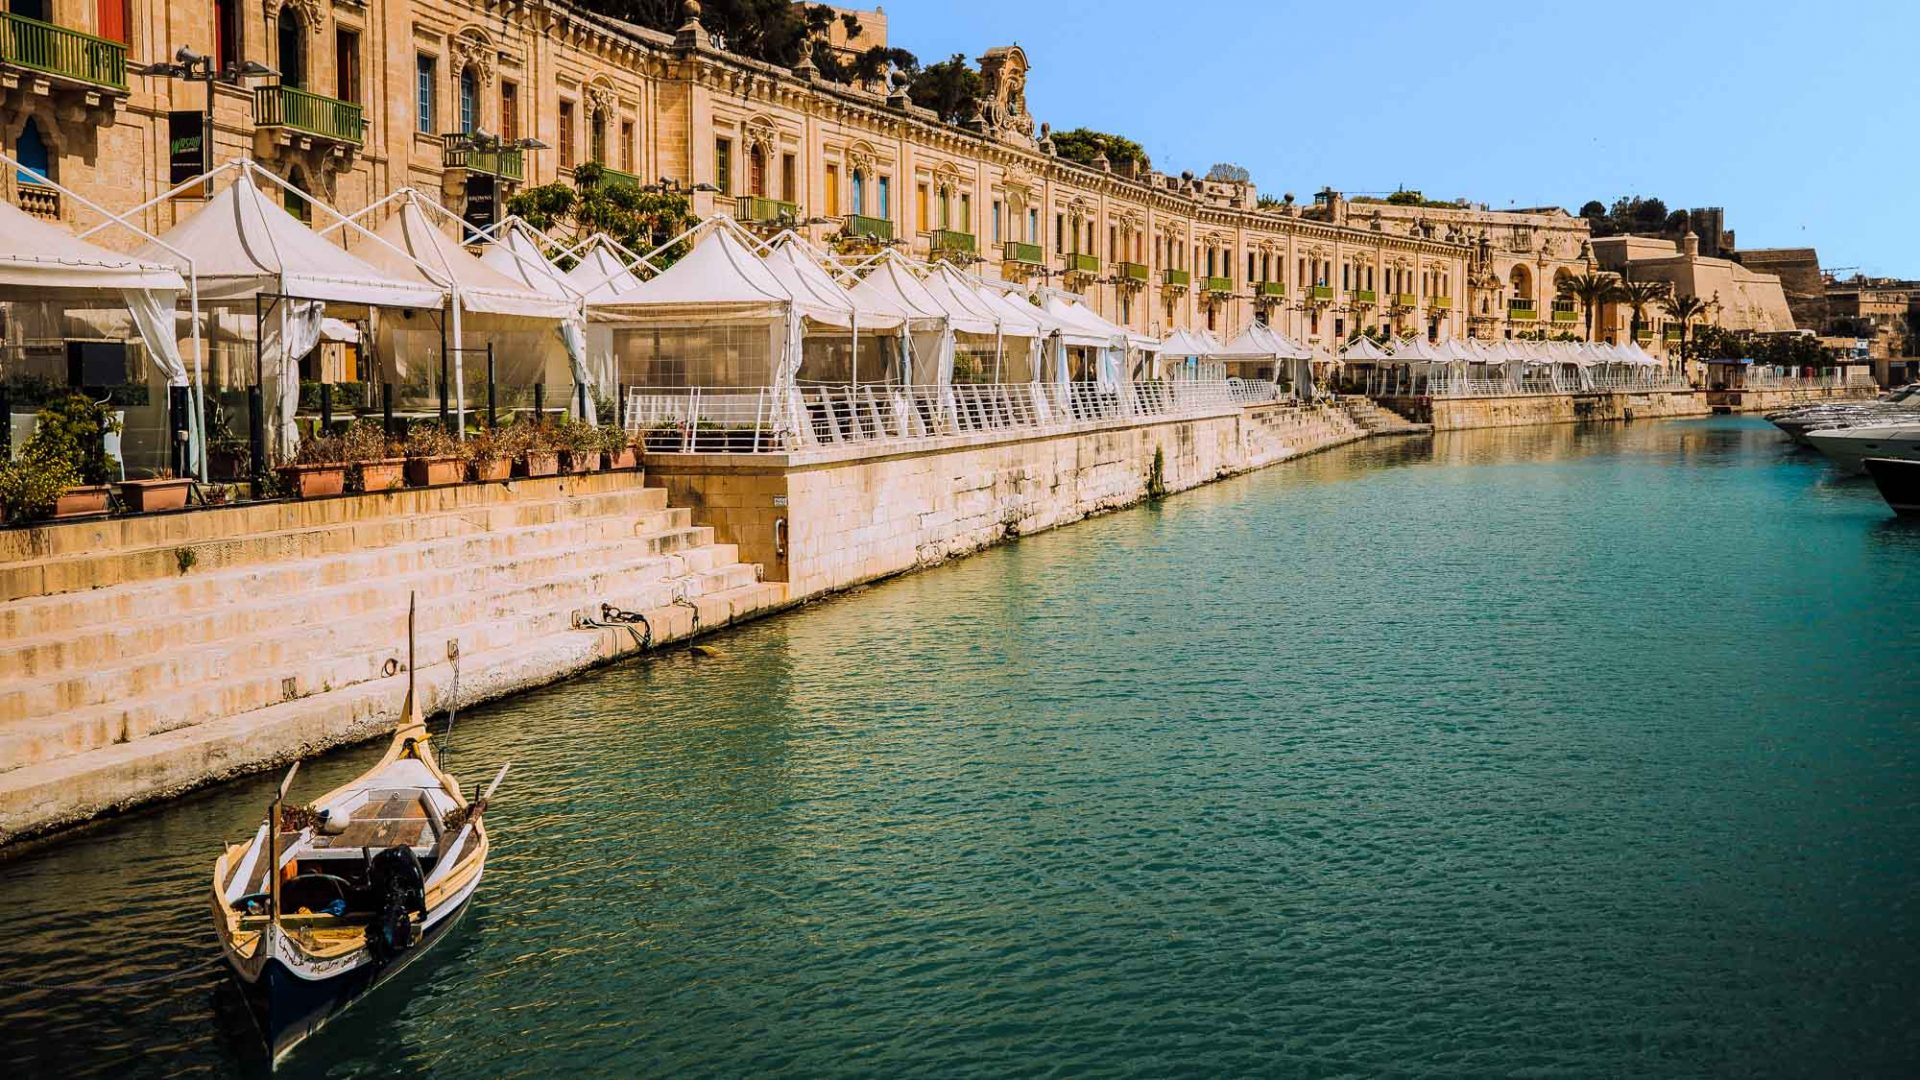 Forget Paris, Valletta is Europe's lesser-known cultural capital